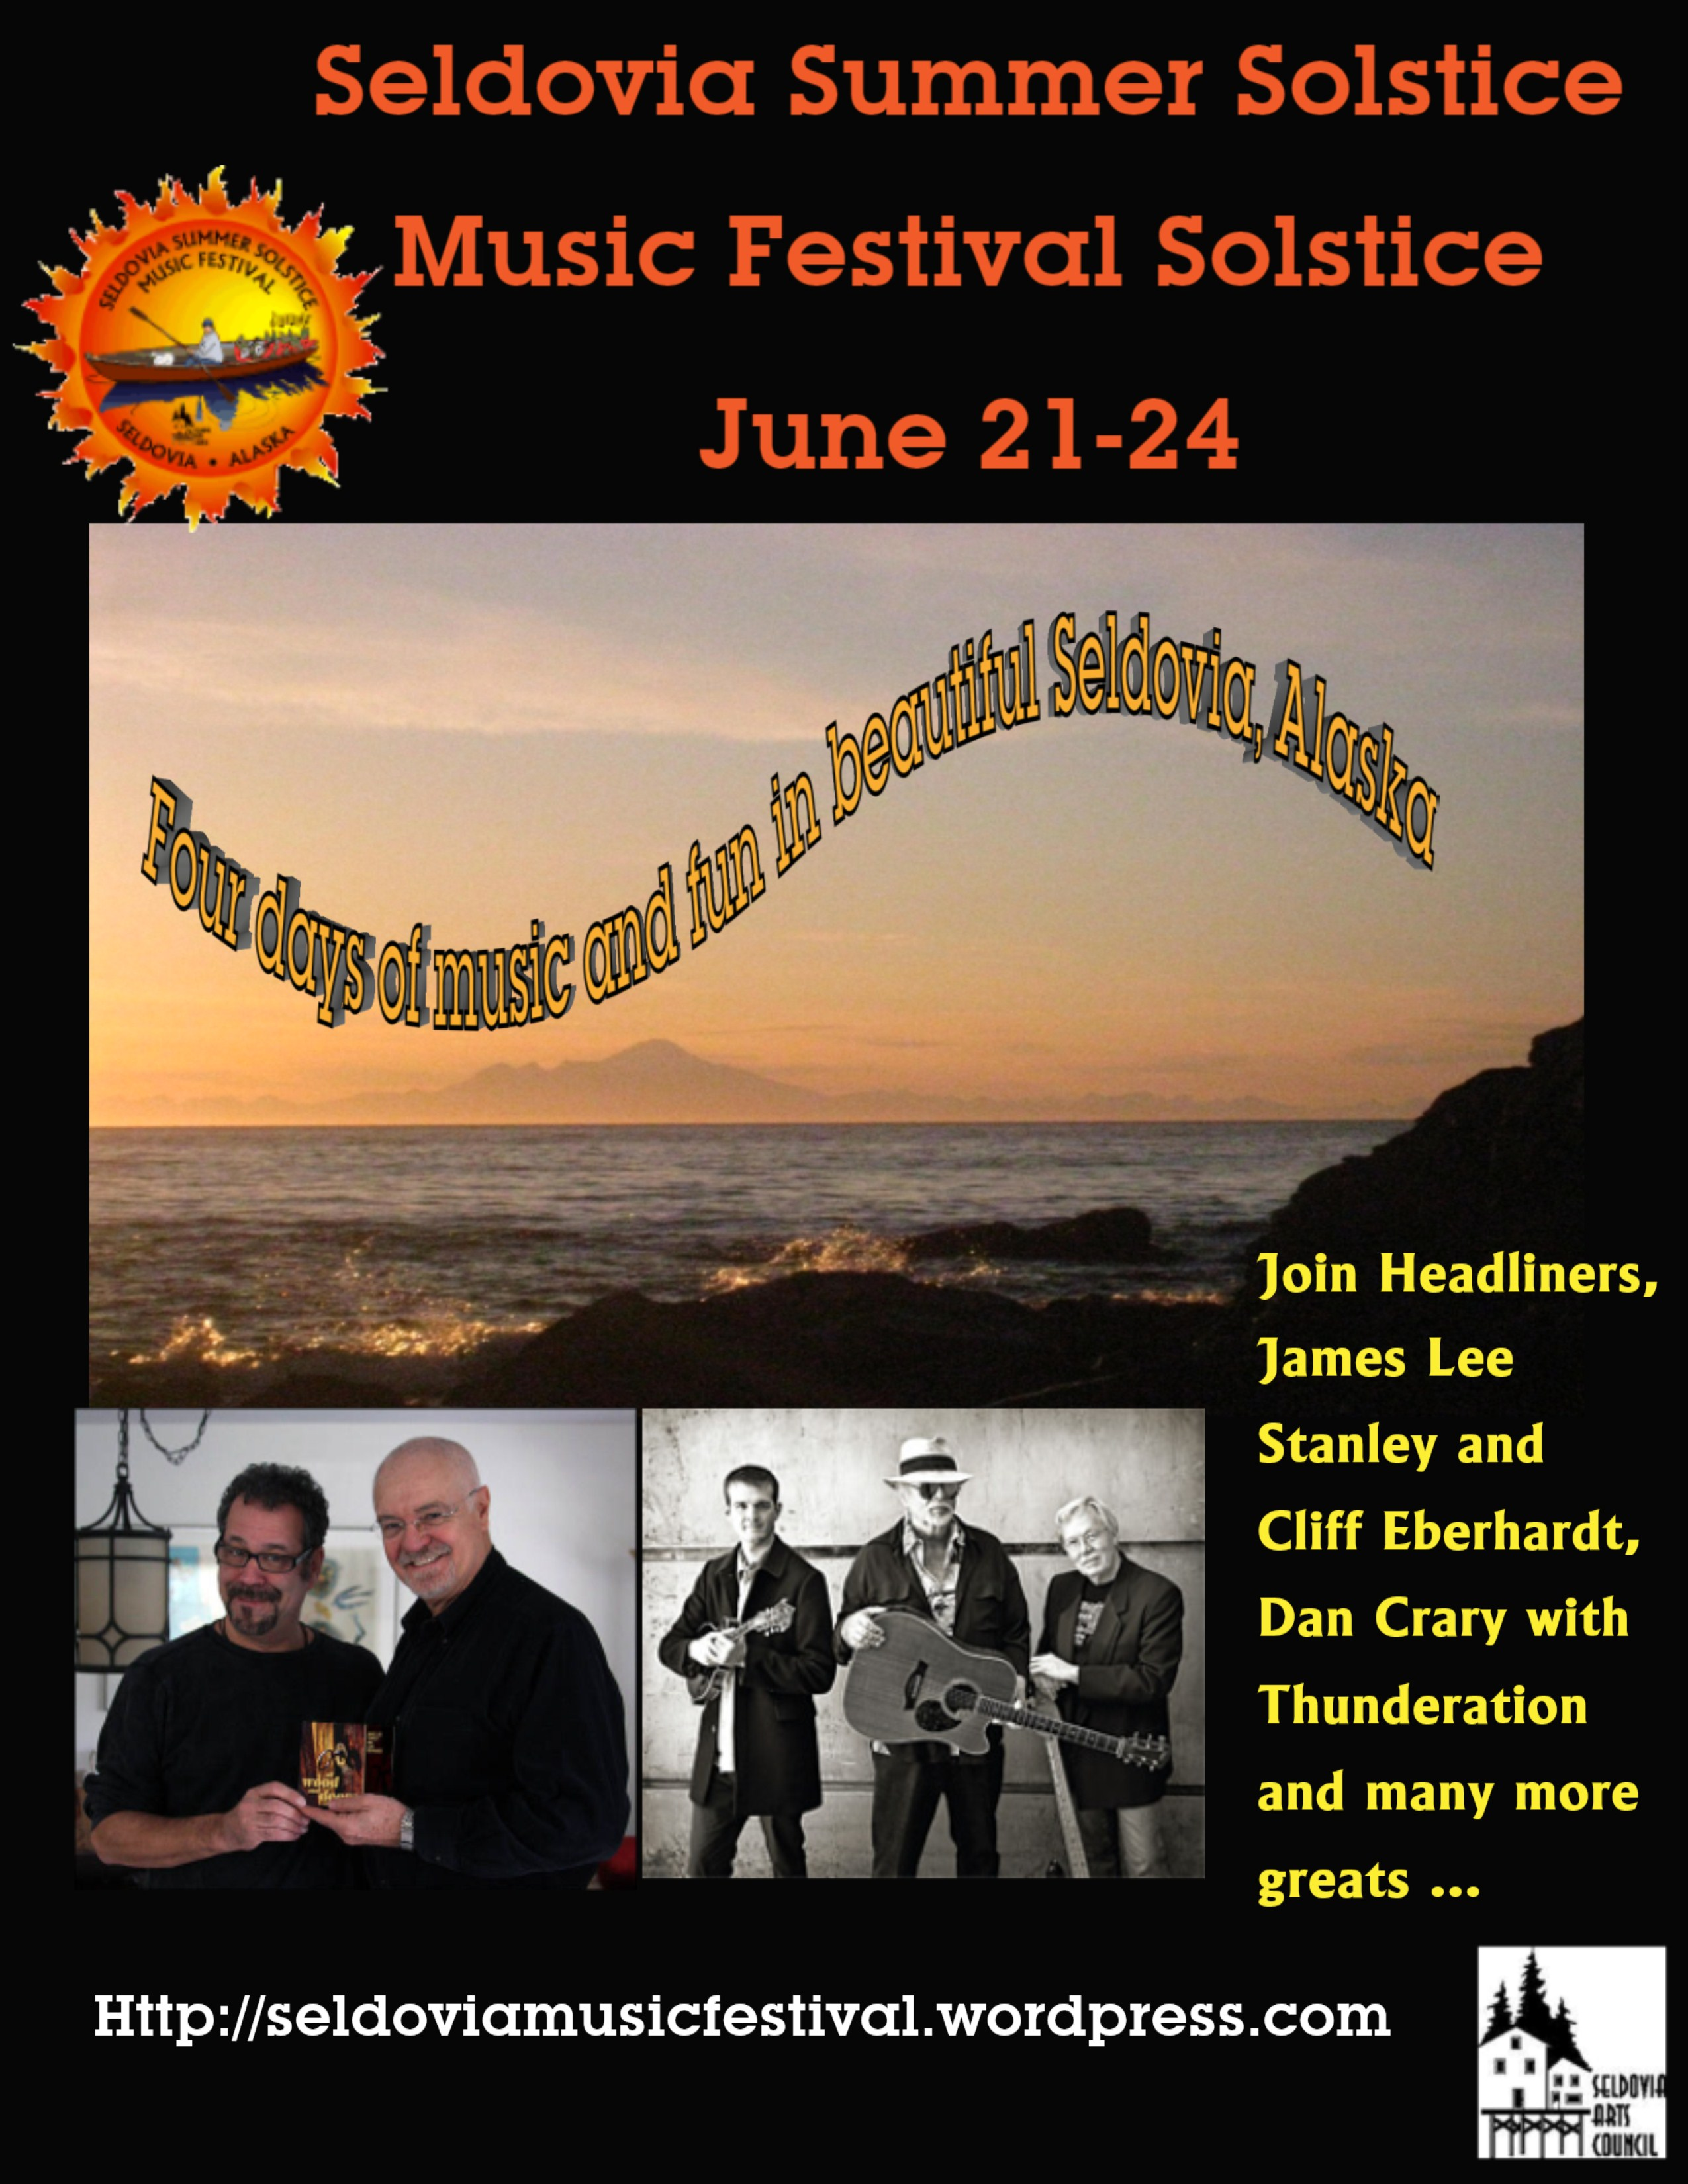 Seldovia's Summer Solstice Music Festival – June 21-24